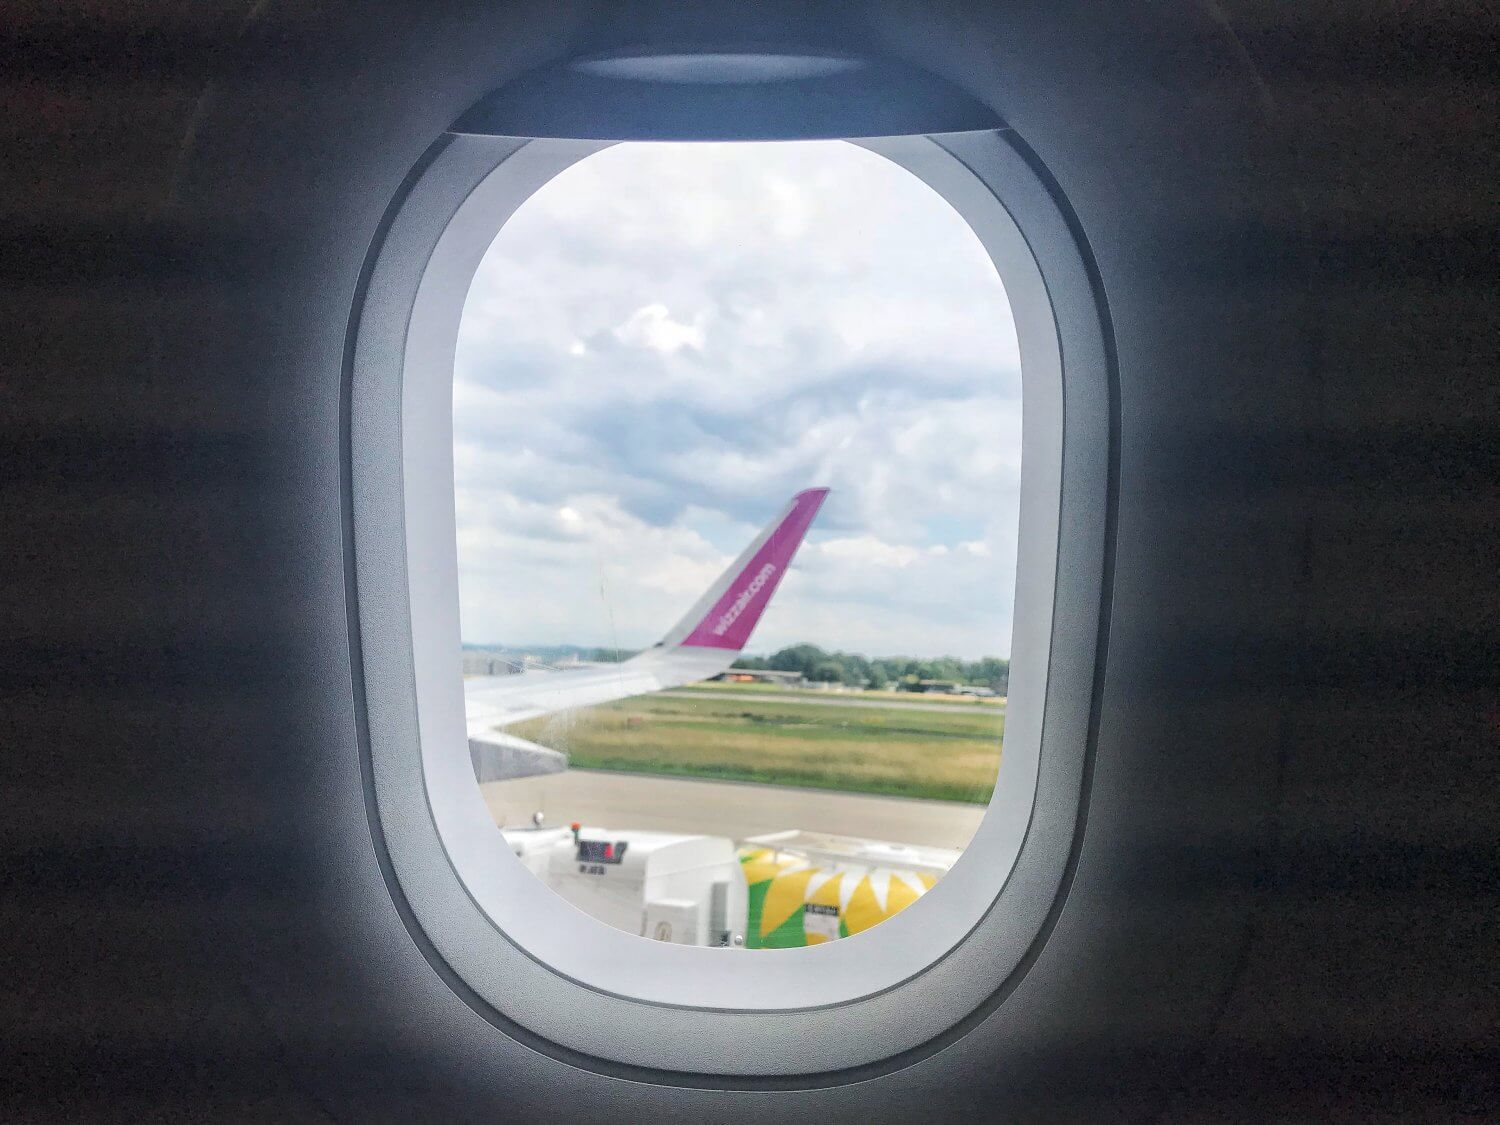 A view from the window of a Wizz Air plane